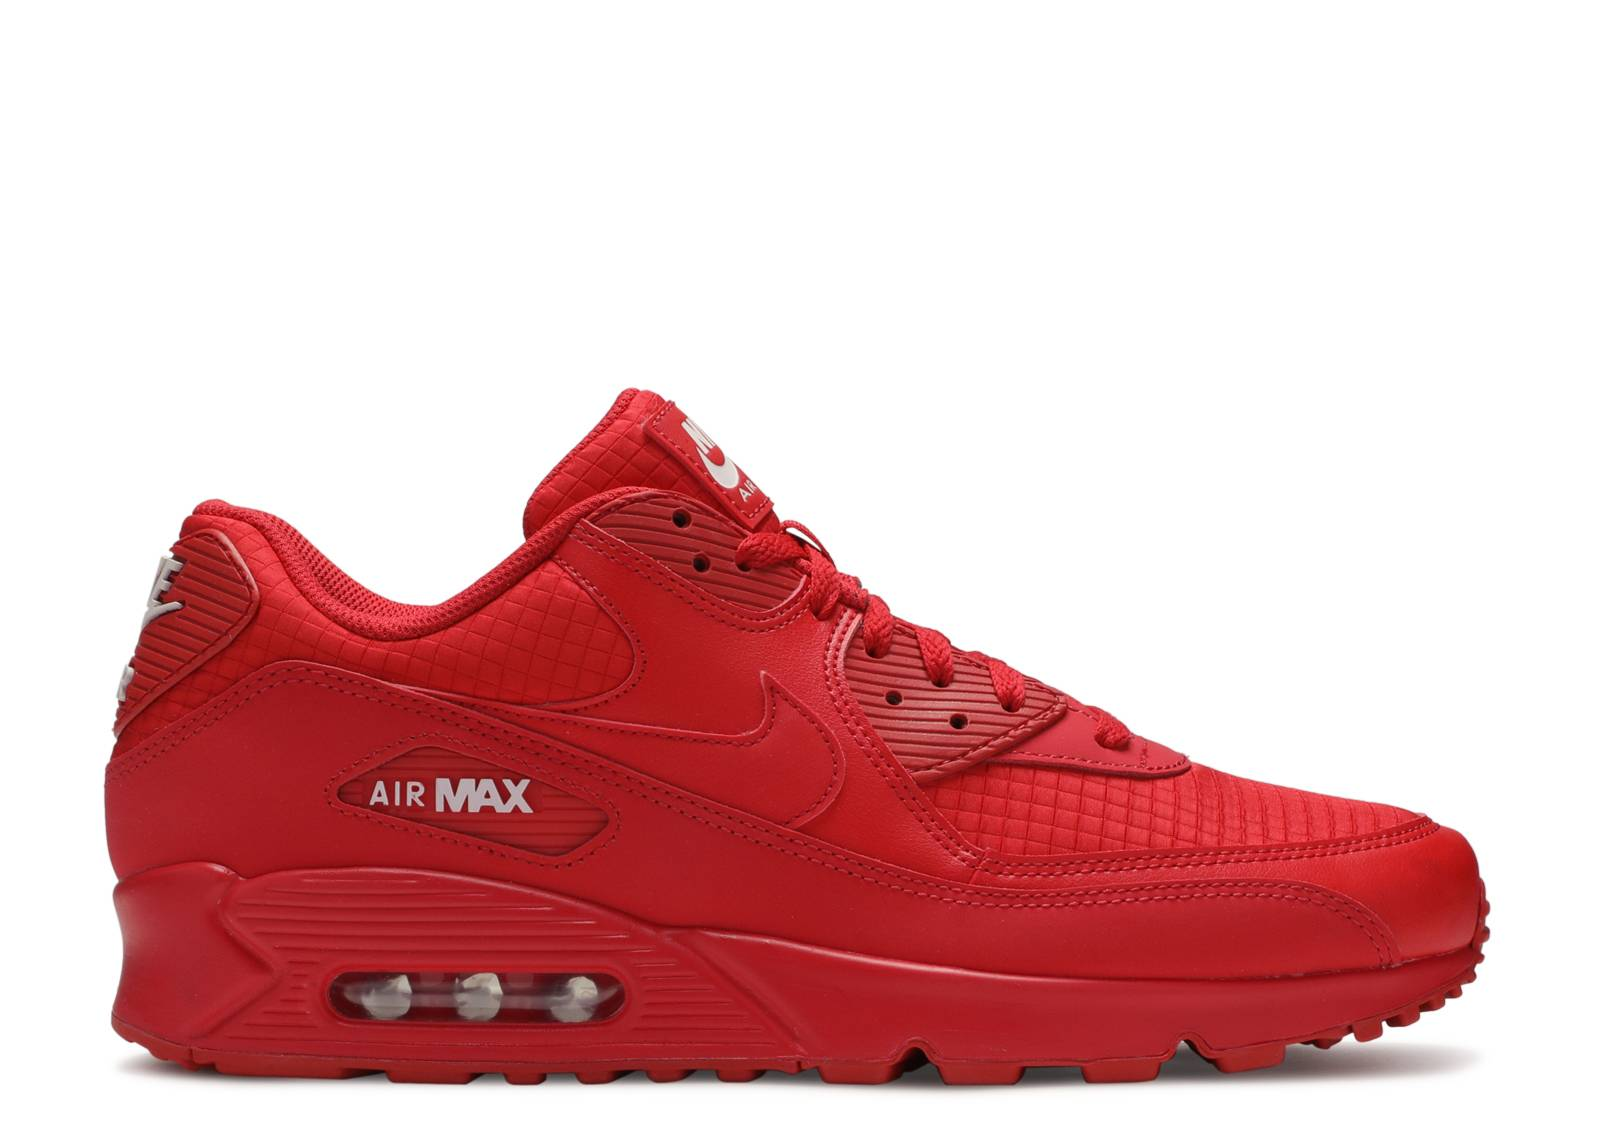 c1f4901e Nike Air Max Shoes | Flight Club